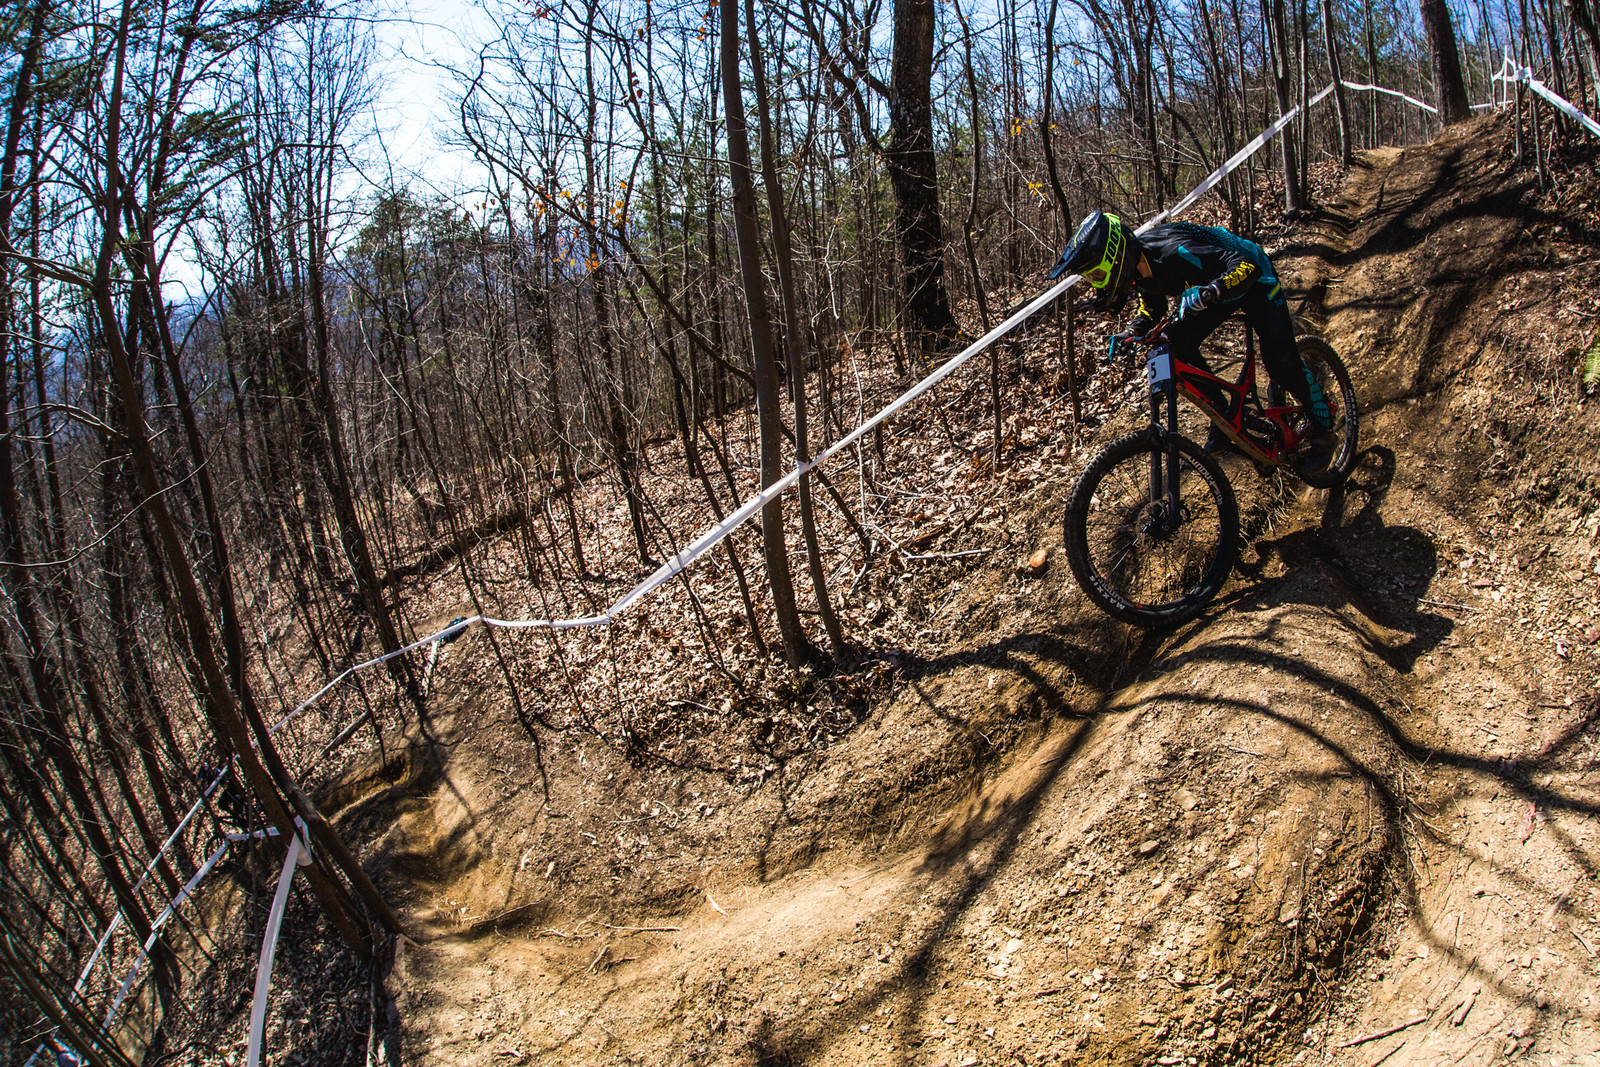 Tanner Stephens - 2017 Pro GRT Windrock, Tennessee DH Action - Mountain Biking Pictures - Vital MTB